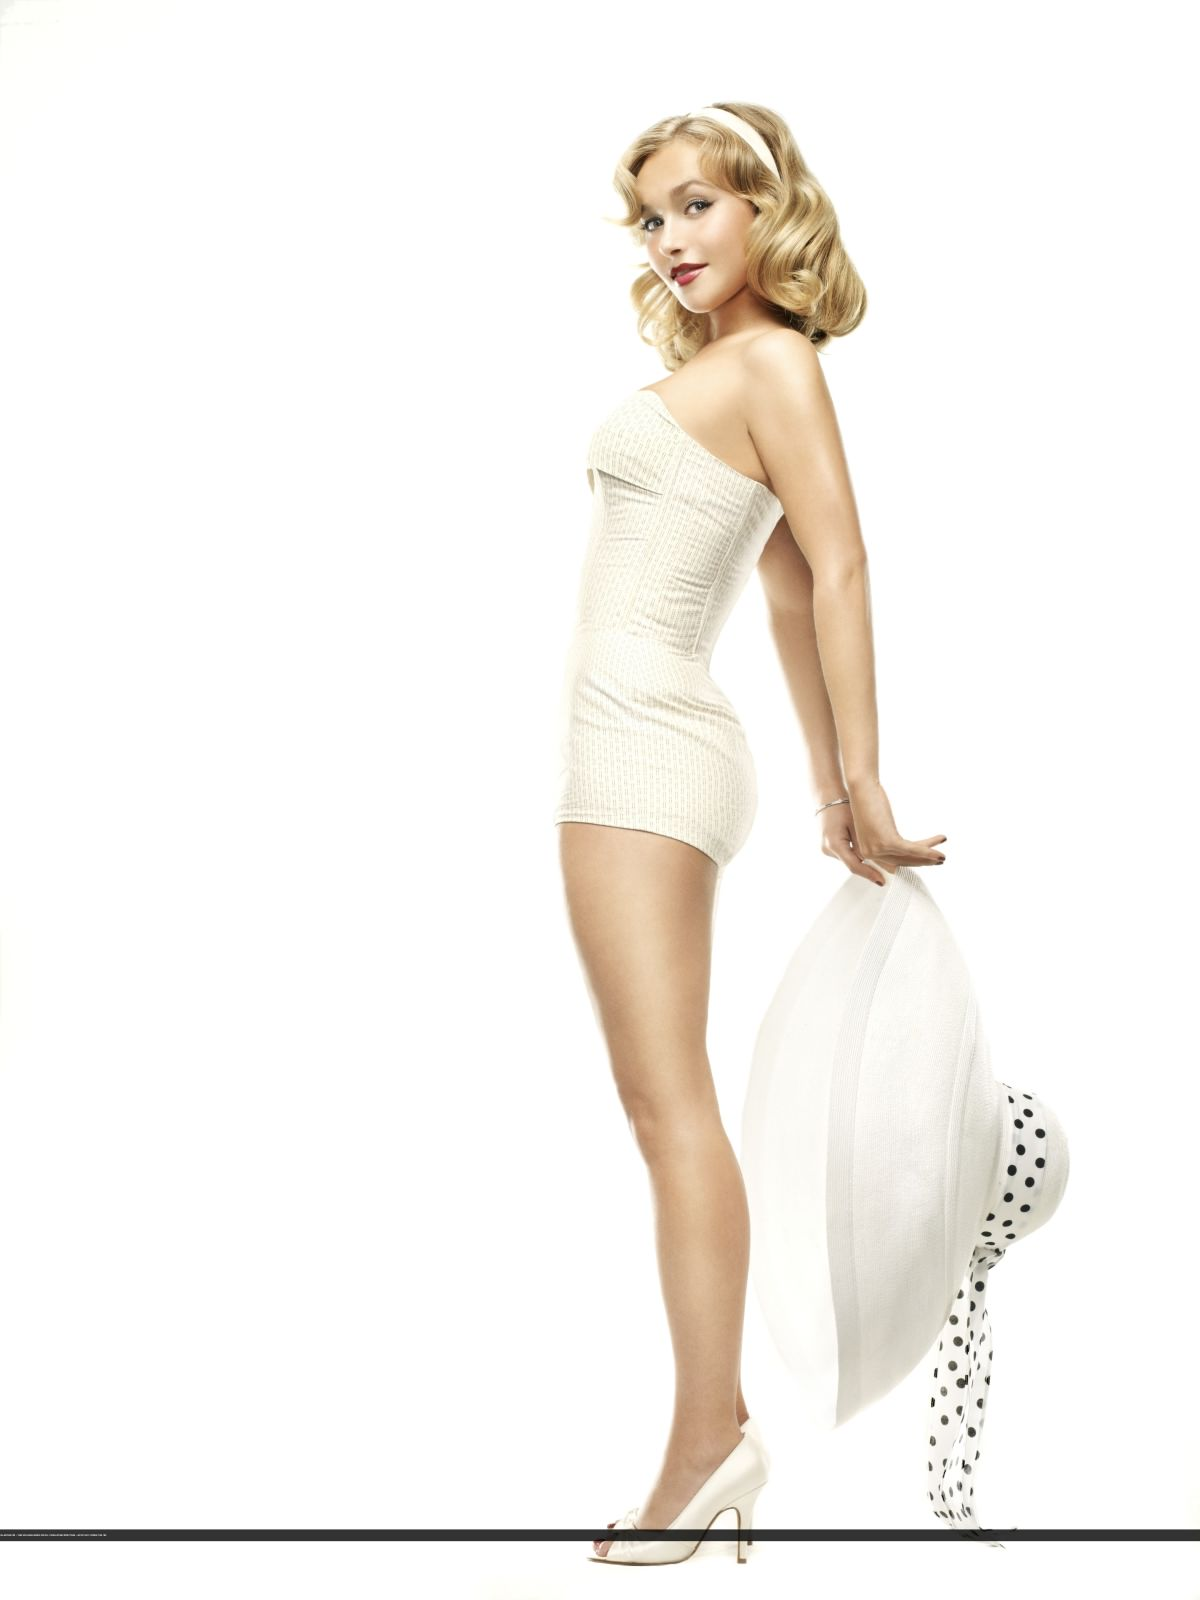 Hayden in Vanity Fair